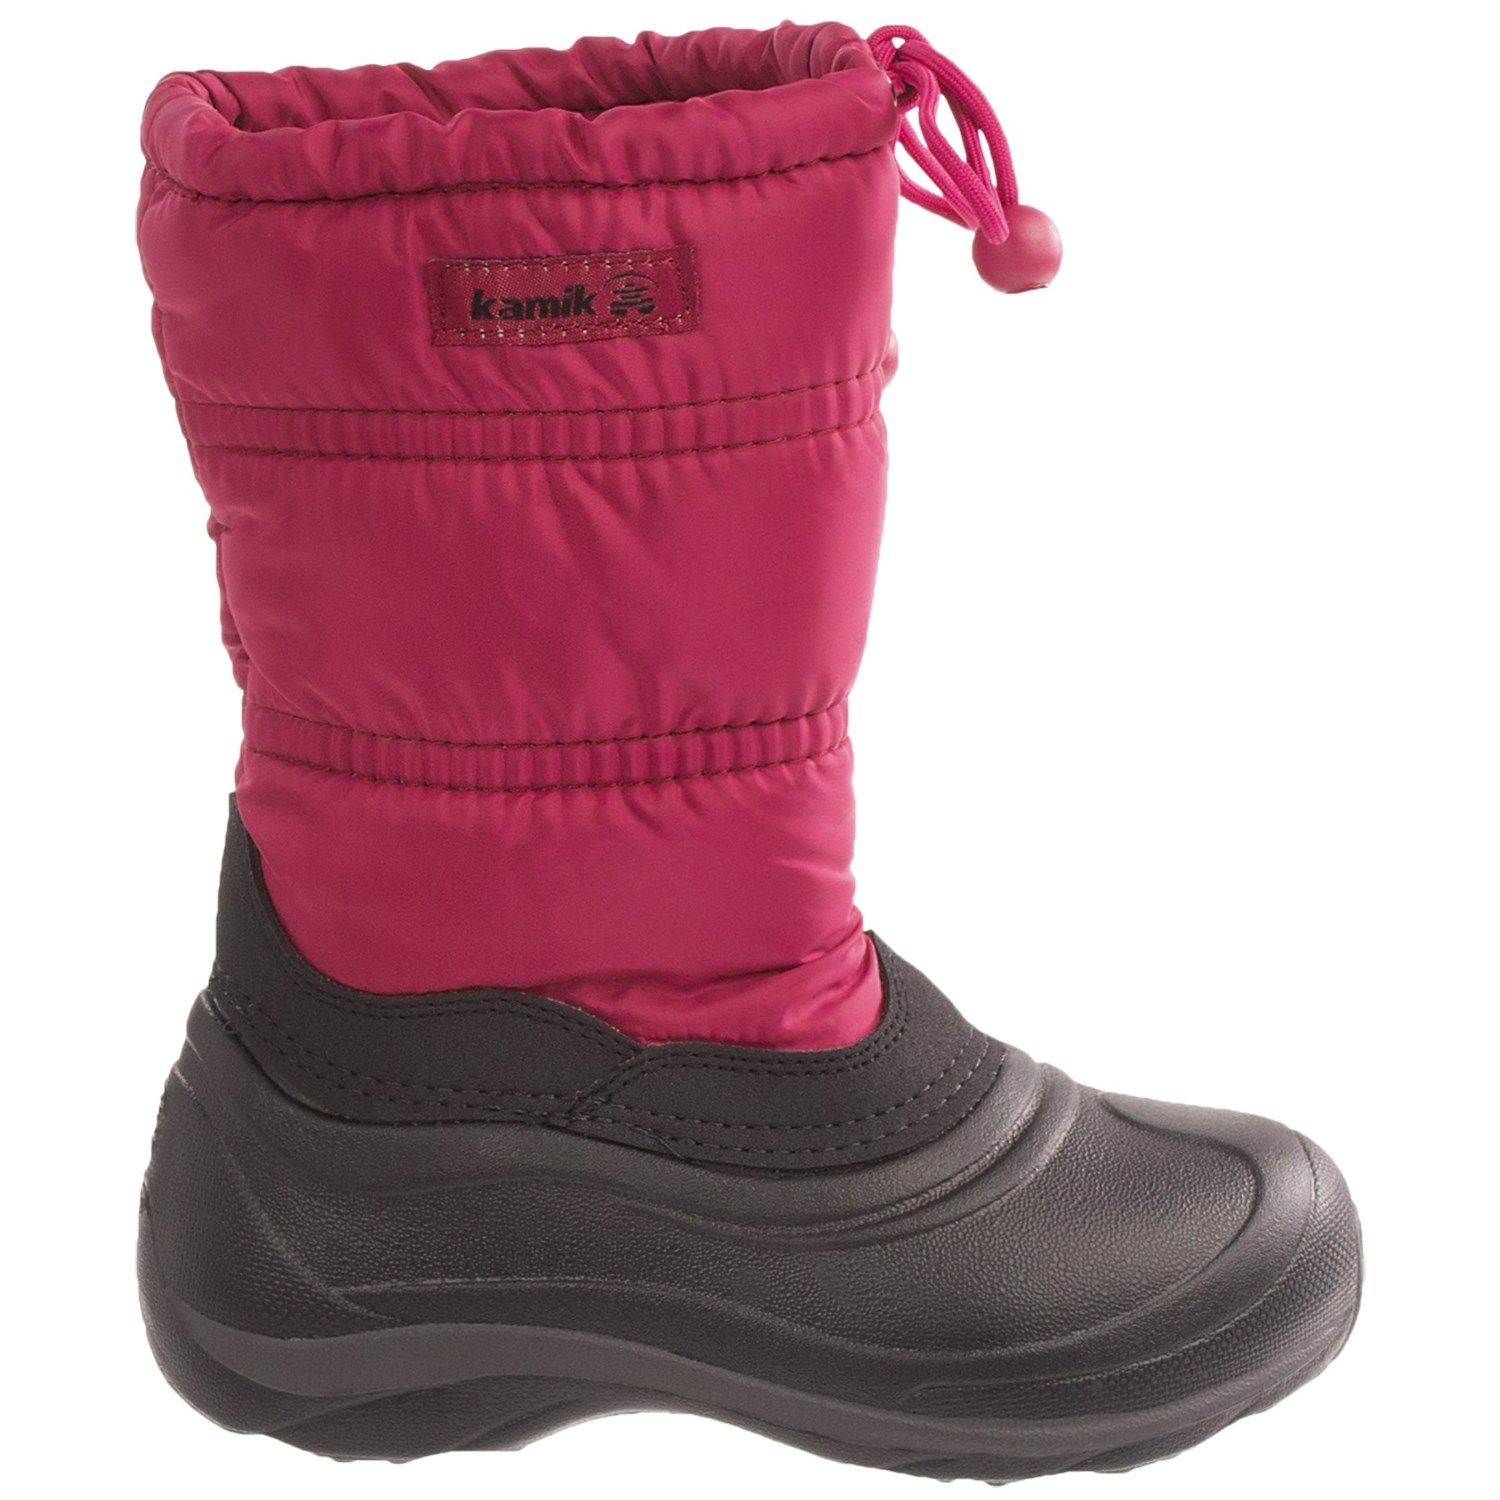 Kamik Shimmer Snow Boots For Kids 7280y Save 31